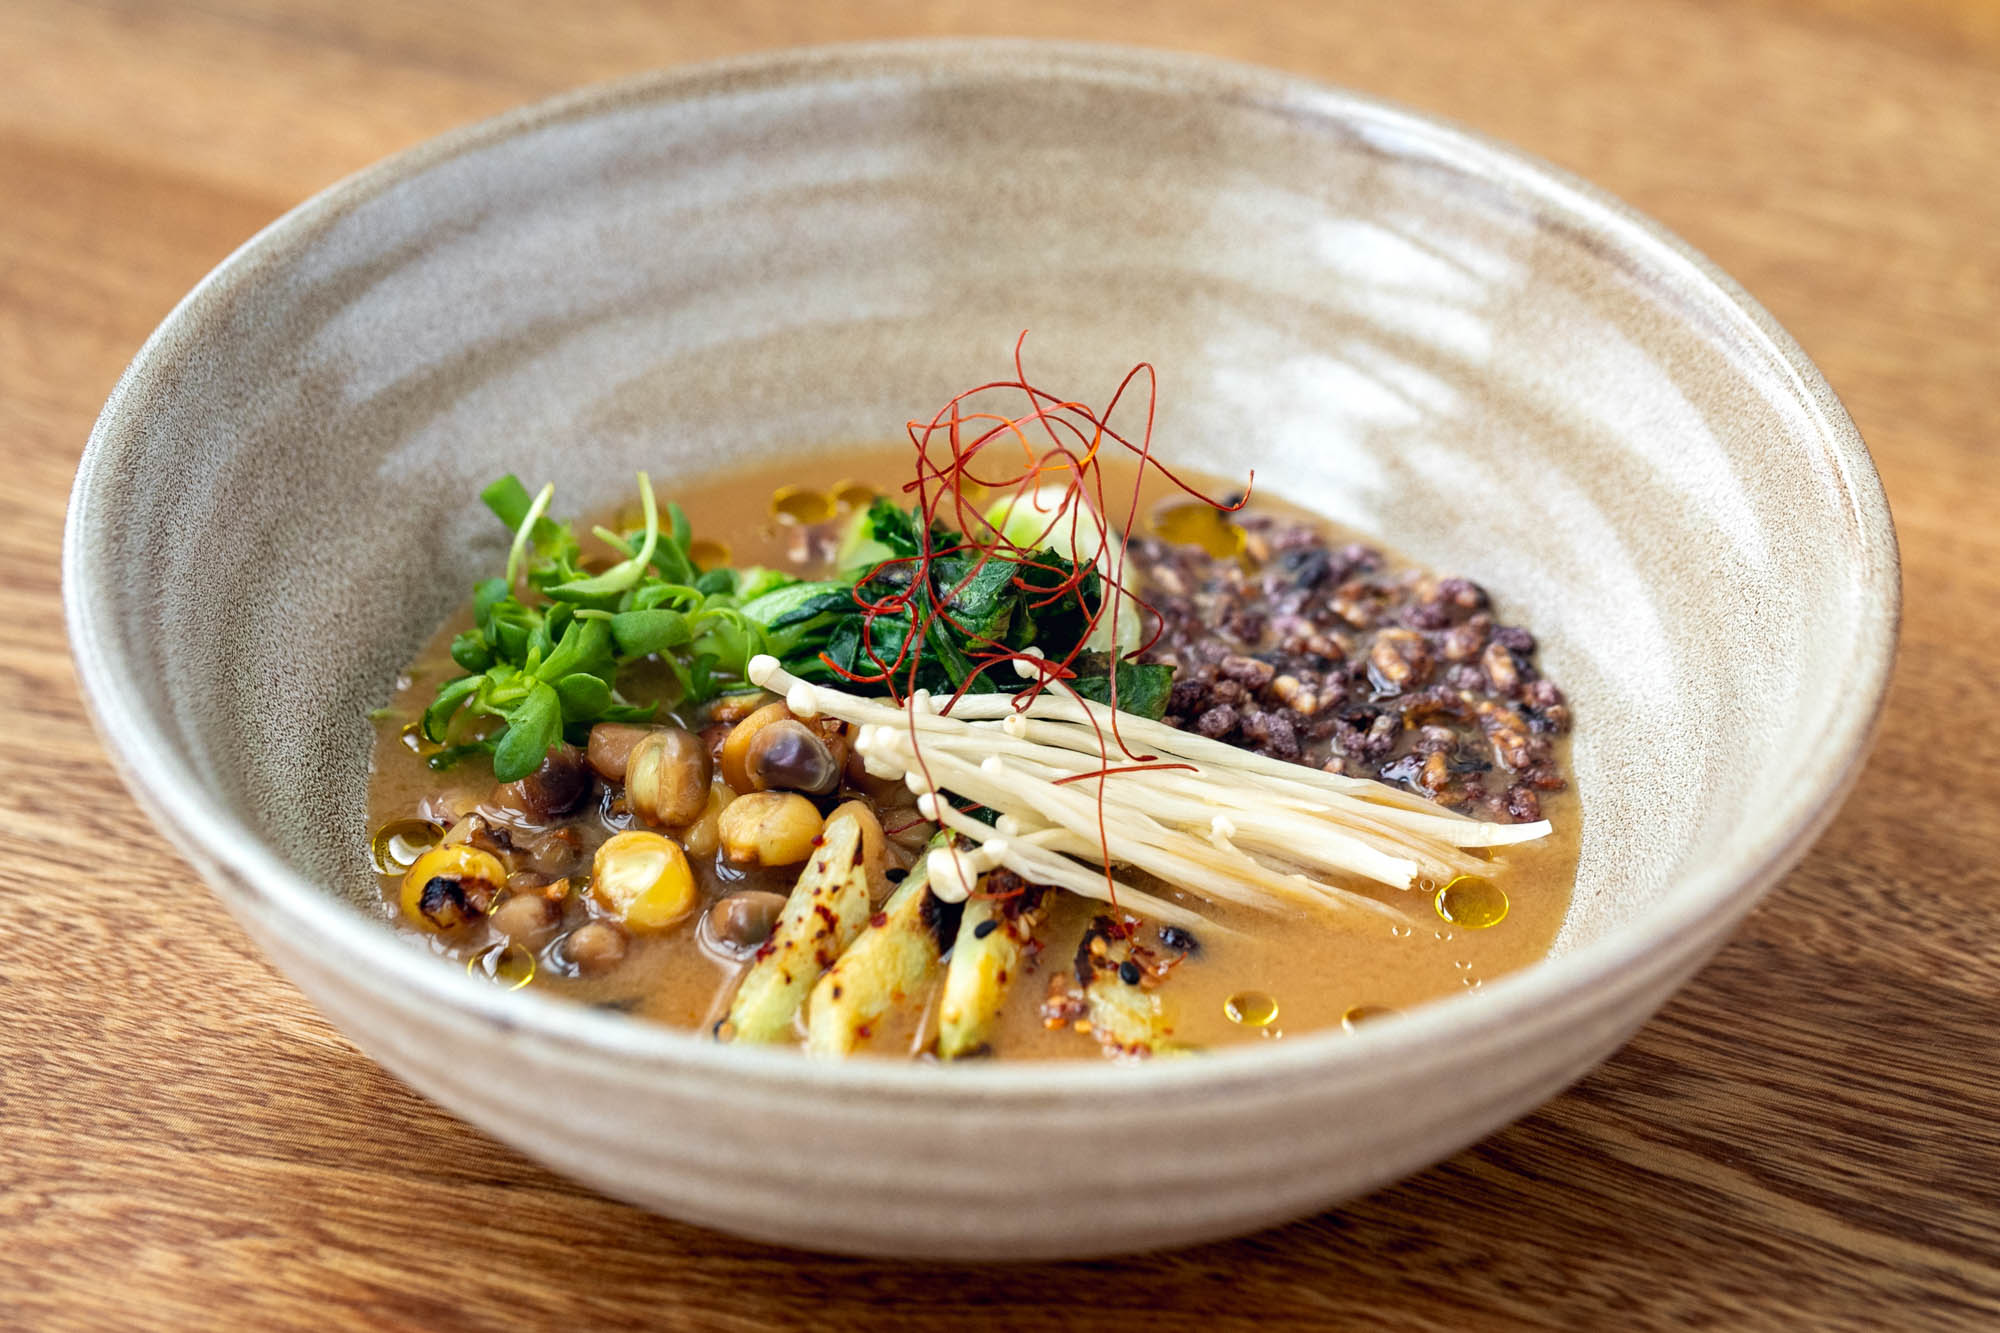 Sooki & Mimi pozole with doenjang, potawatomi flint corn, puffed rice, chayote, enoki